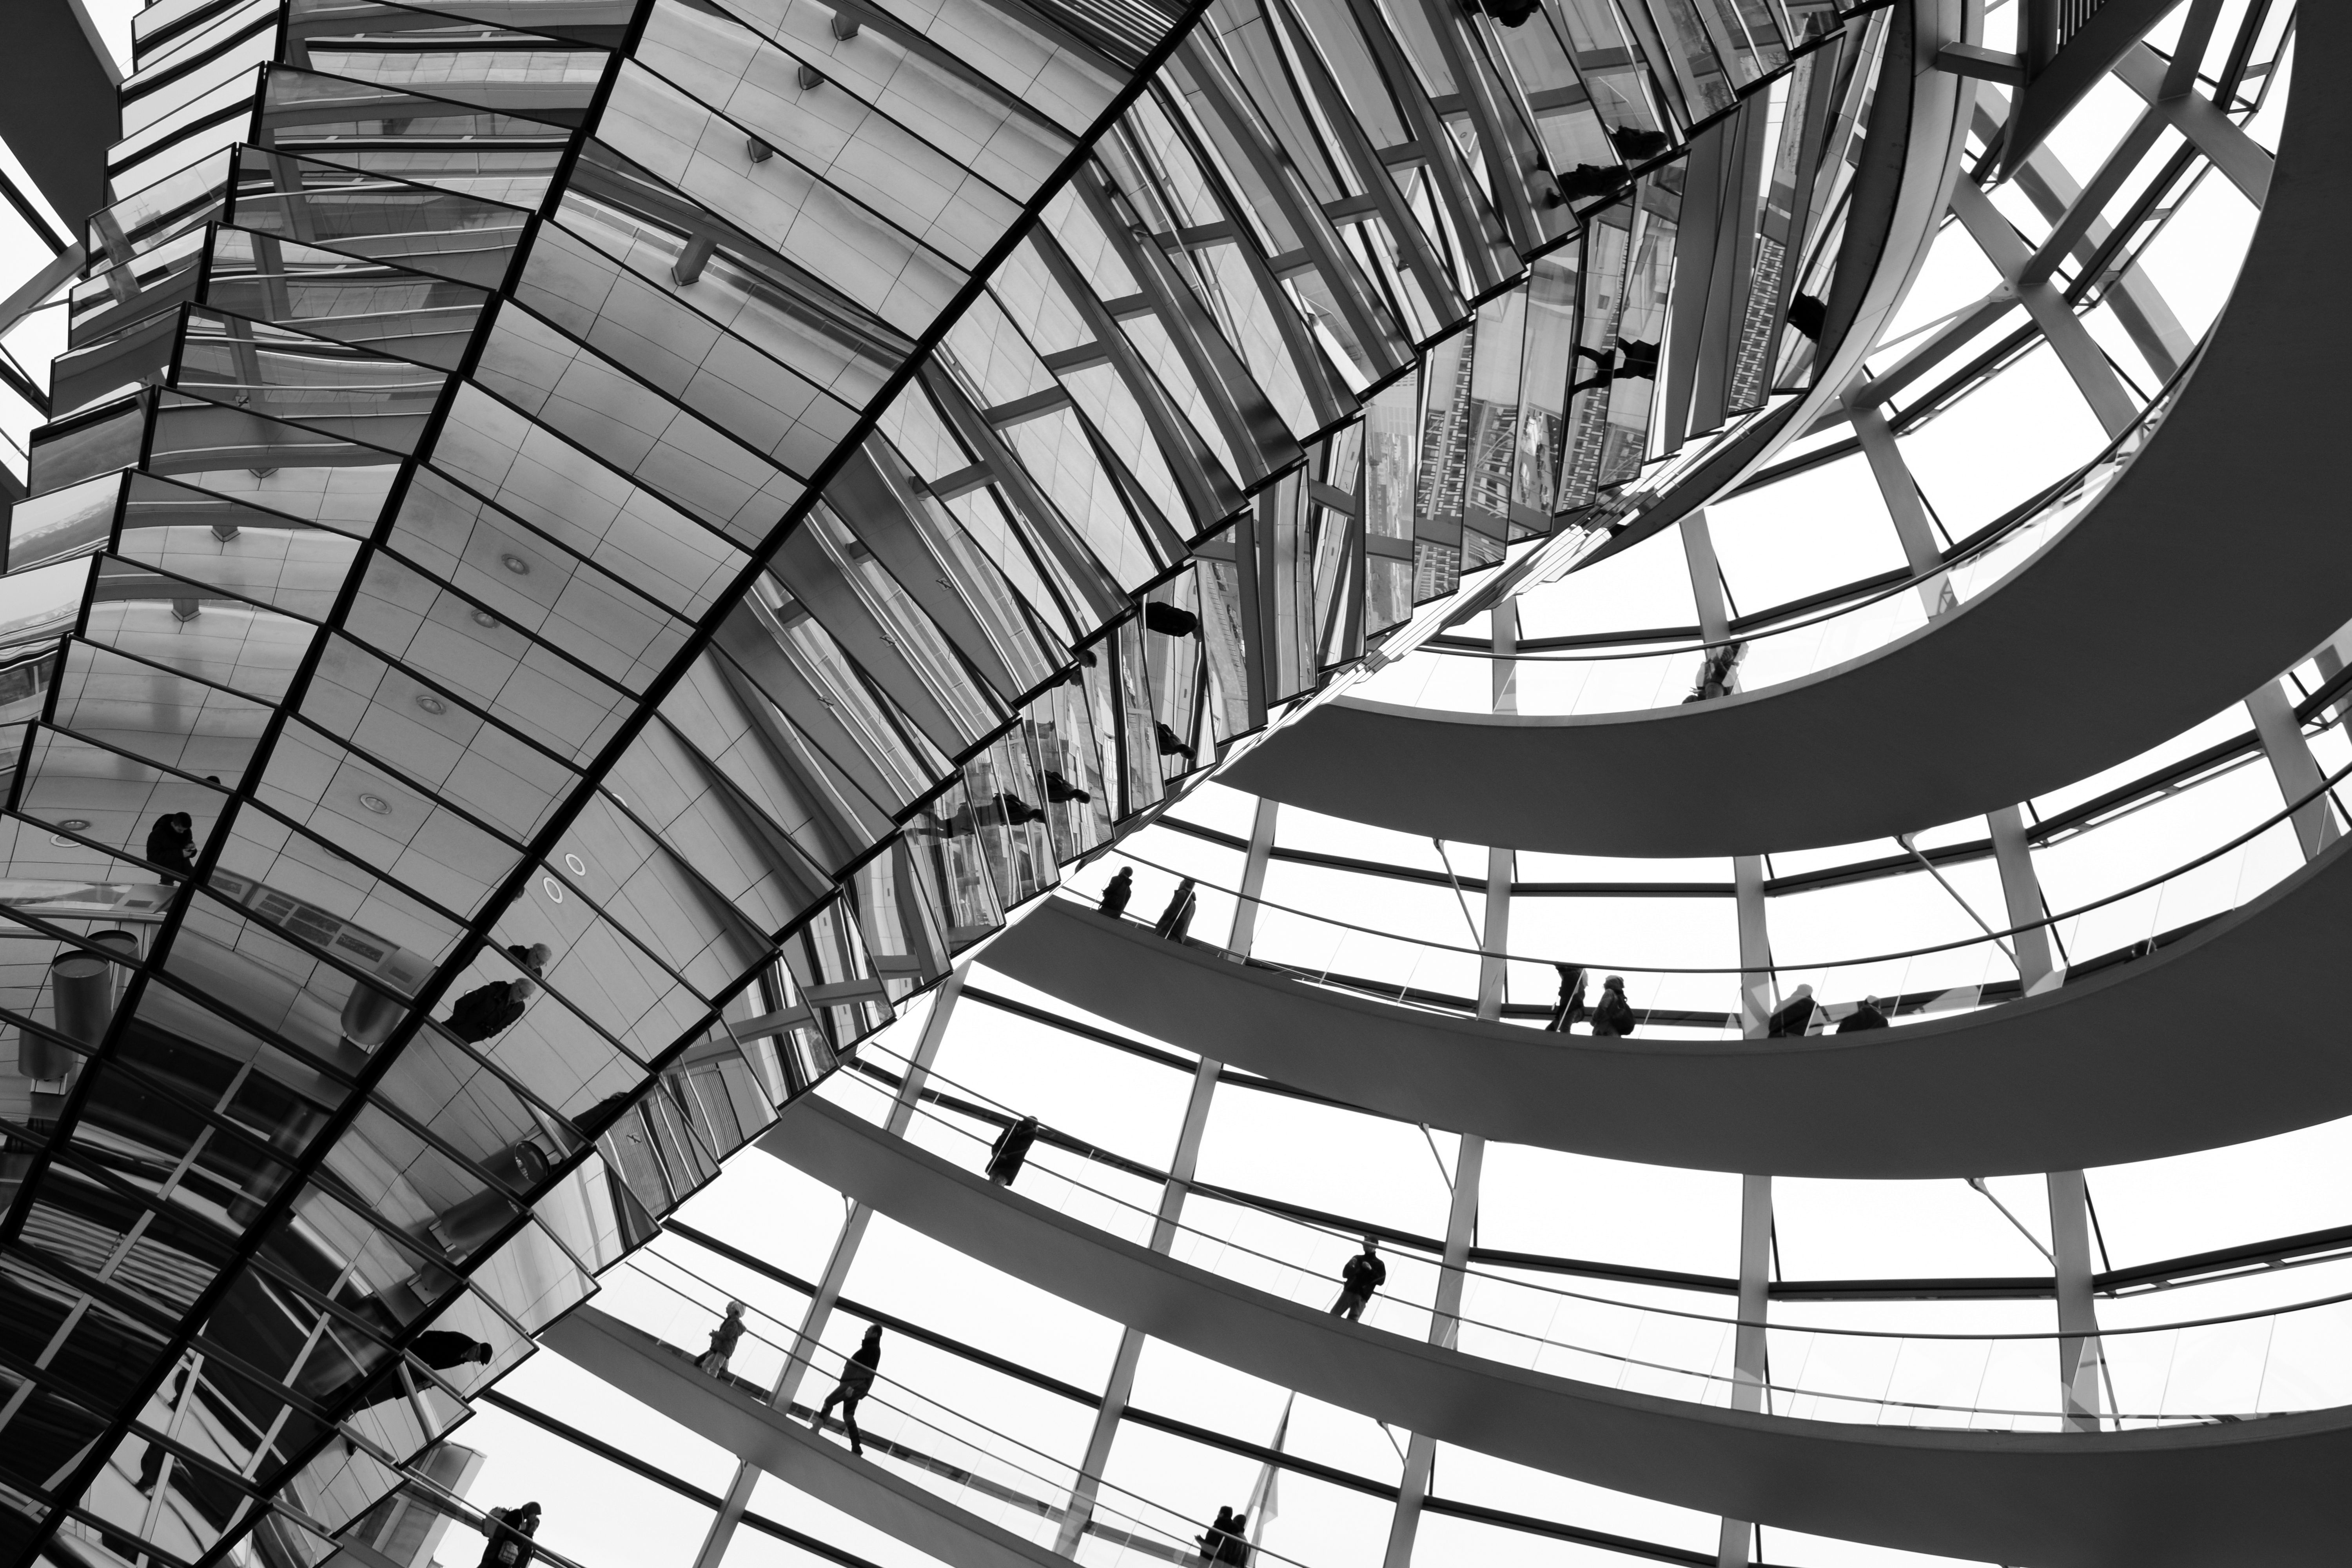 Reichstag, Berlin, Germany @All rights reserved: Agnieszka Rzepka Photography